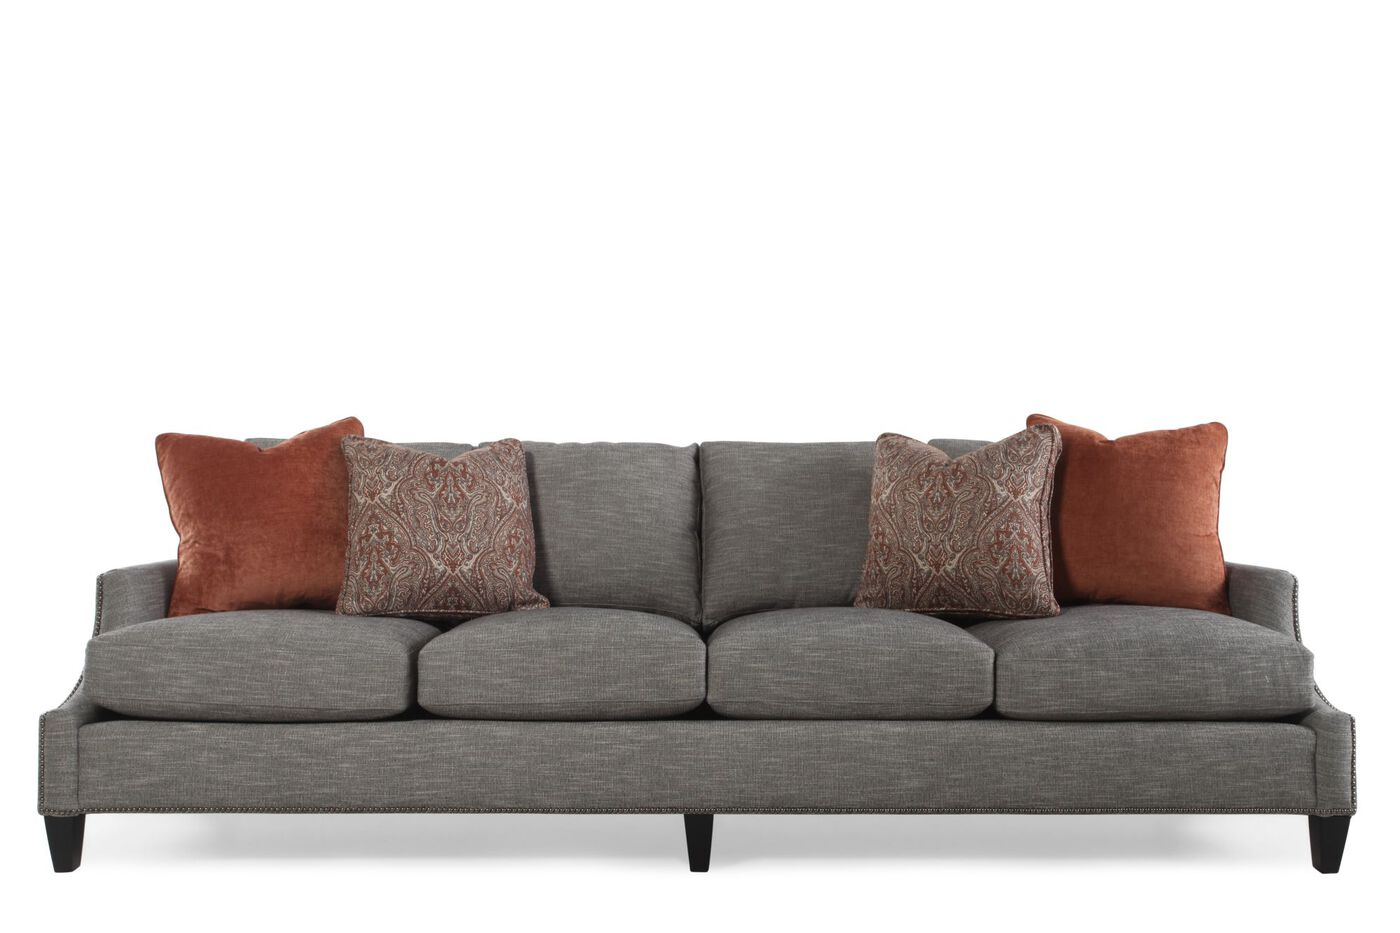 Bernhardt crawford sofa mathis brothers furniture for Bernhardt furniture